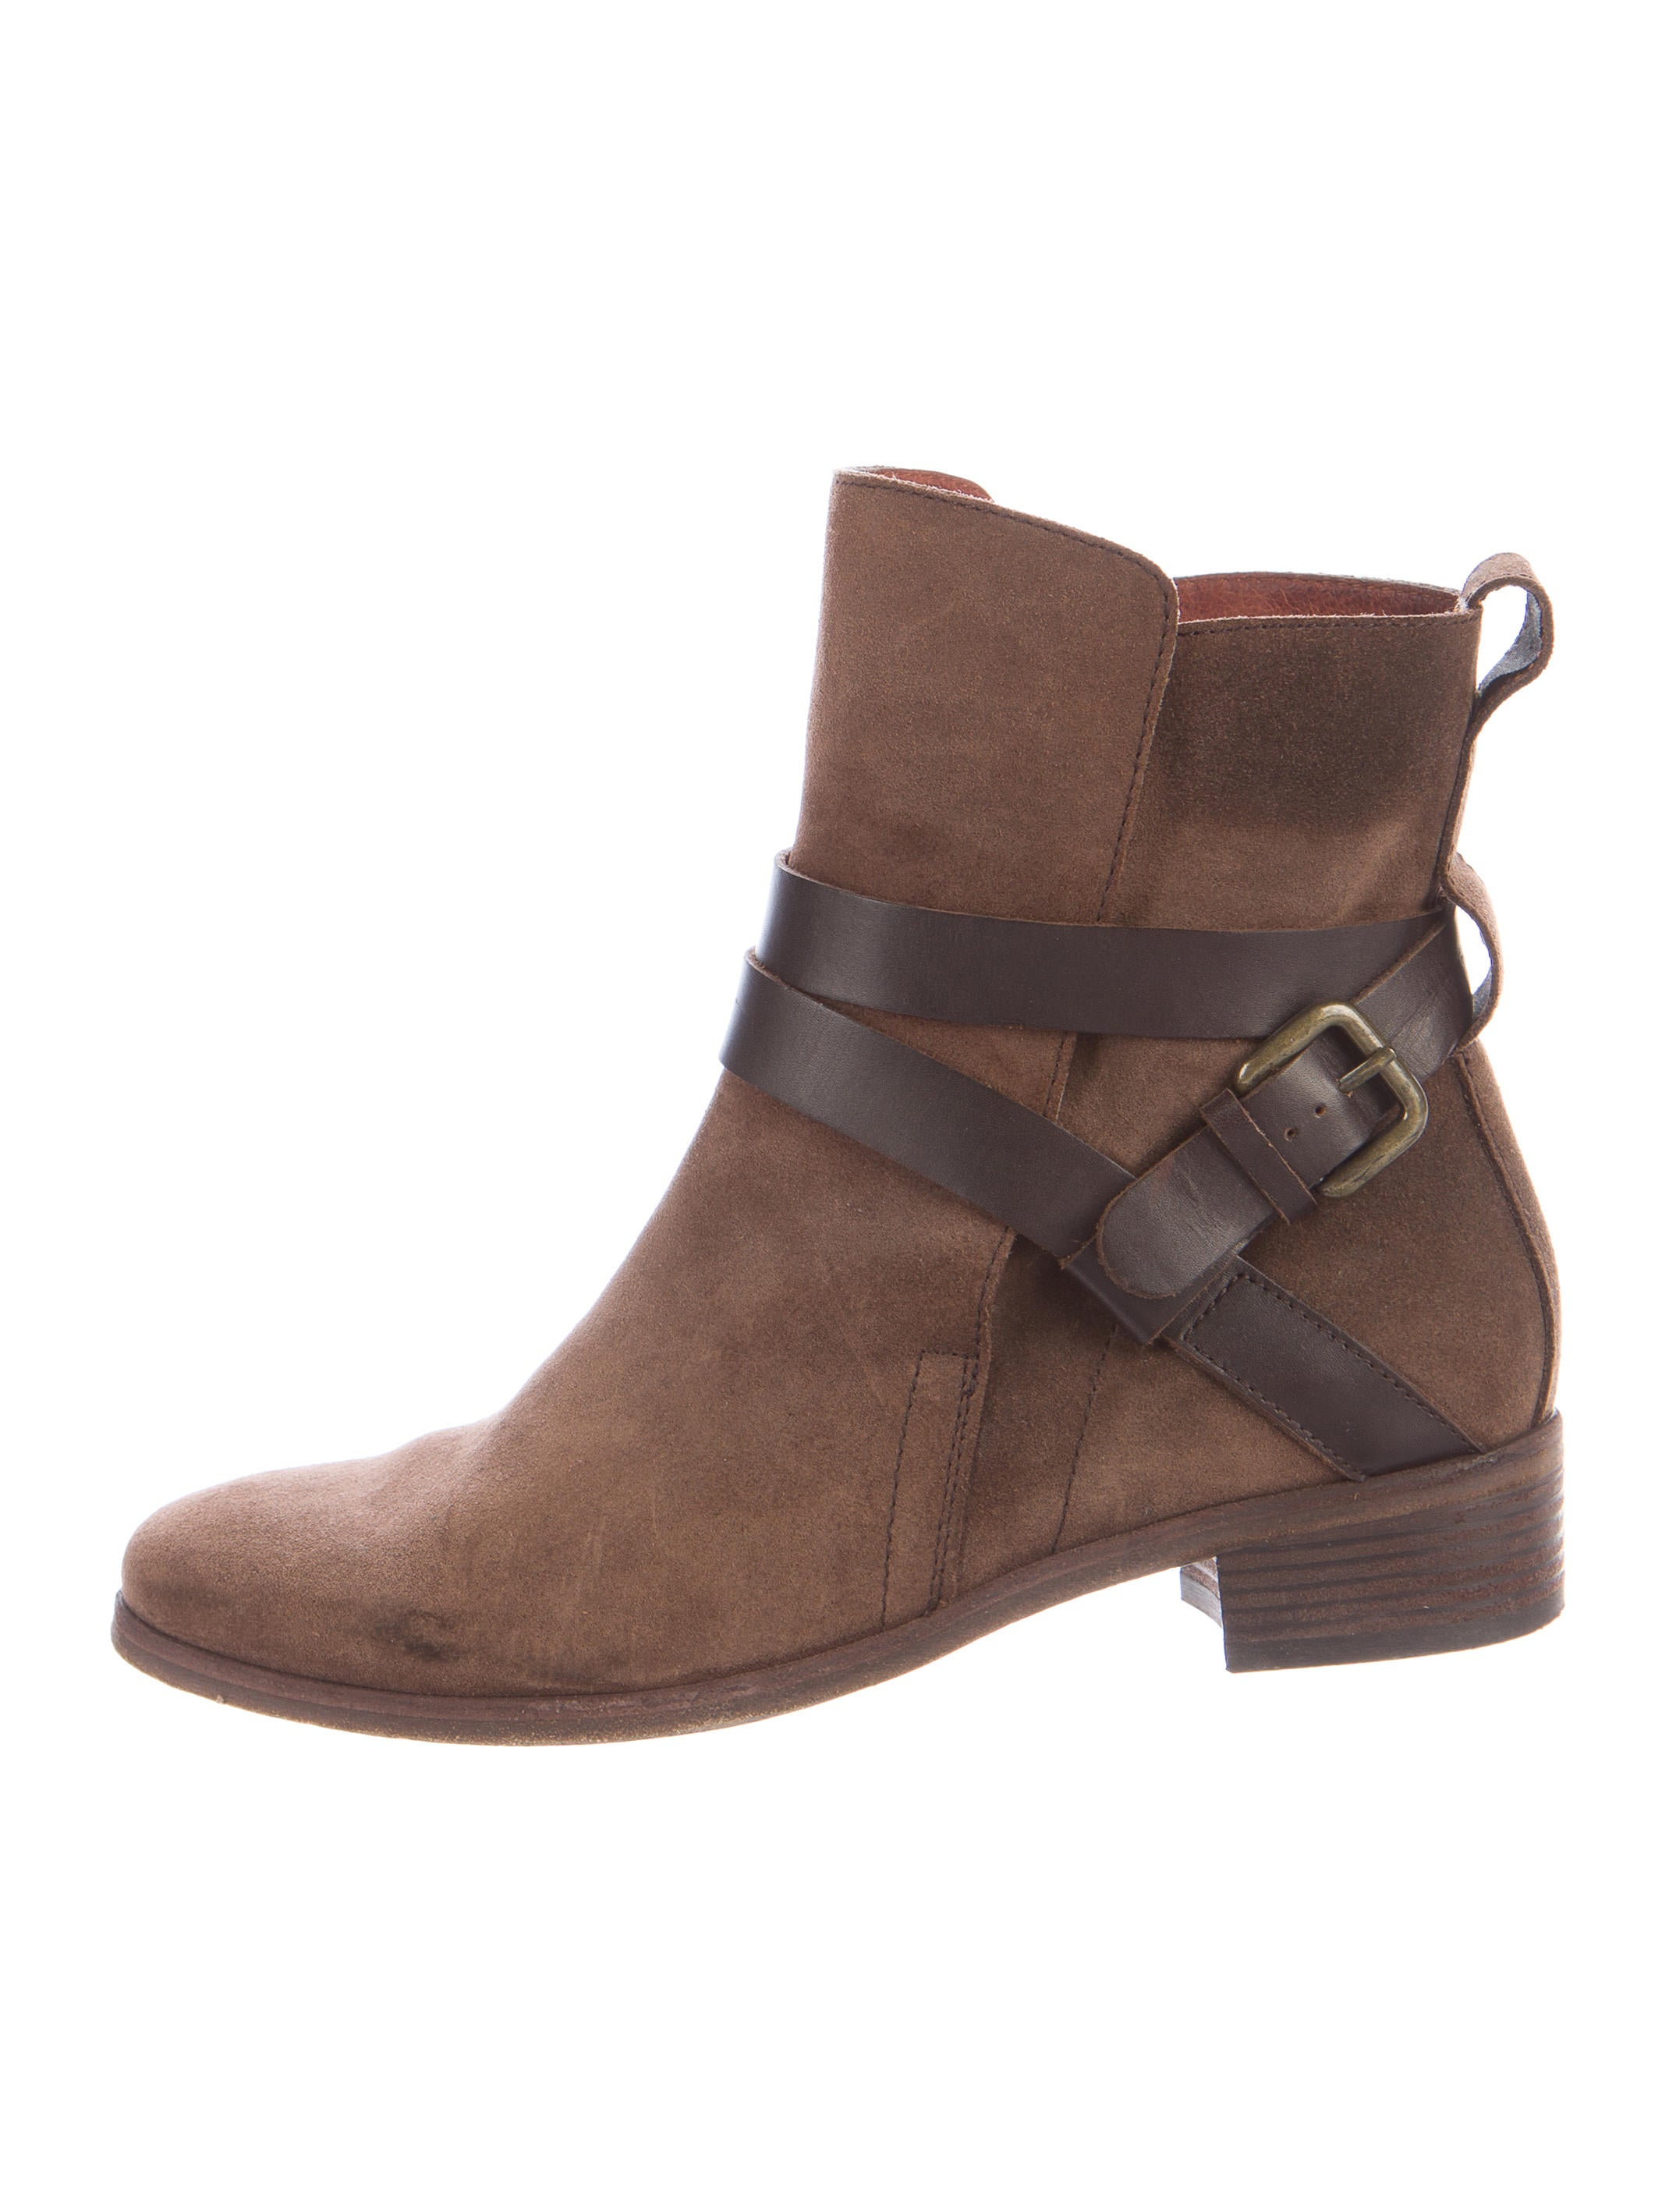 see by chlo 233 suede buckle accented boots shoes wse28155 the realreal